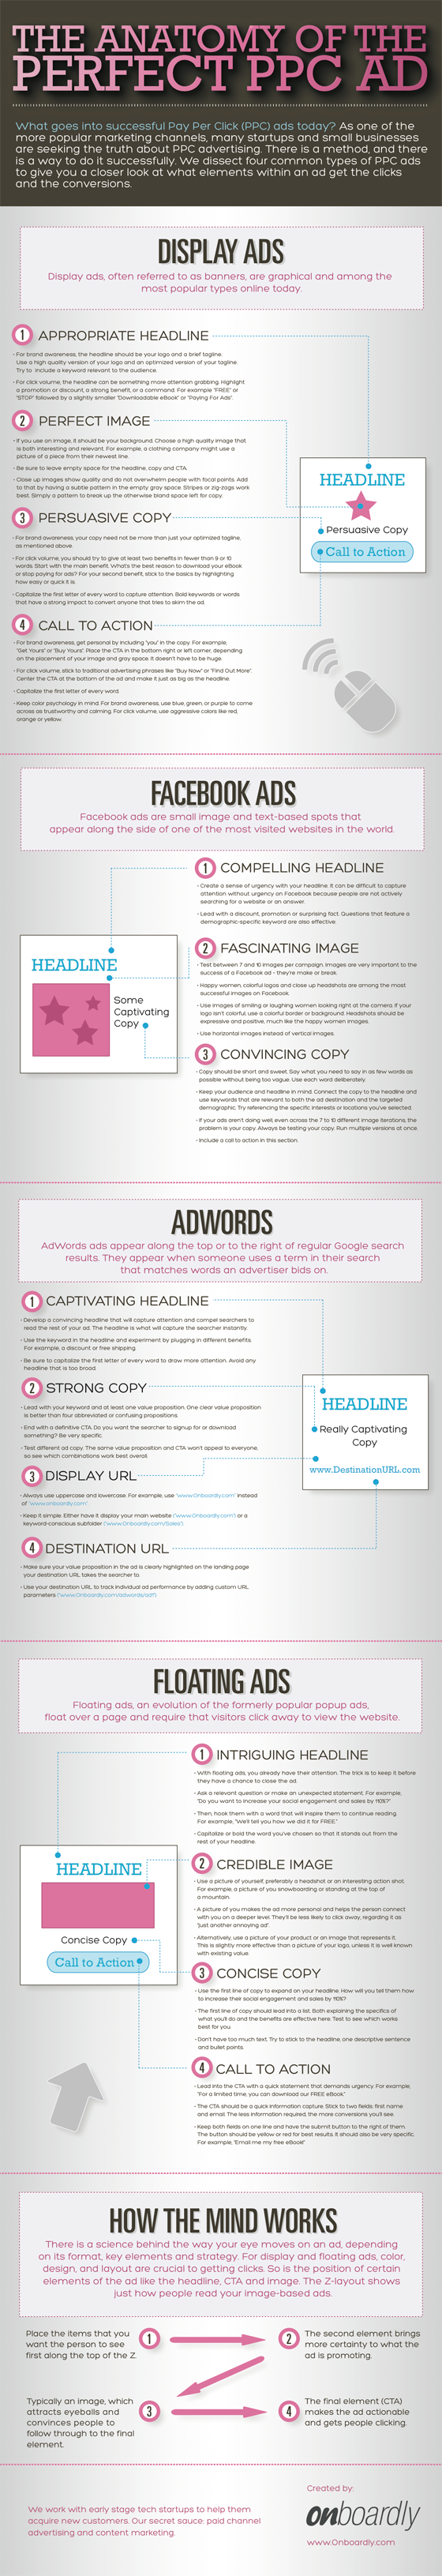 The Anatomy of the Perfect PPC Ad http://unbounce.com/ppc/anatomy-of ...